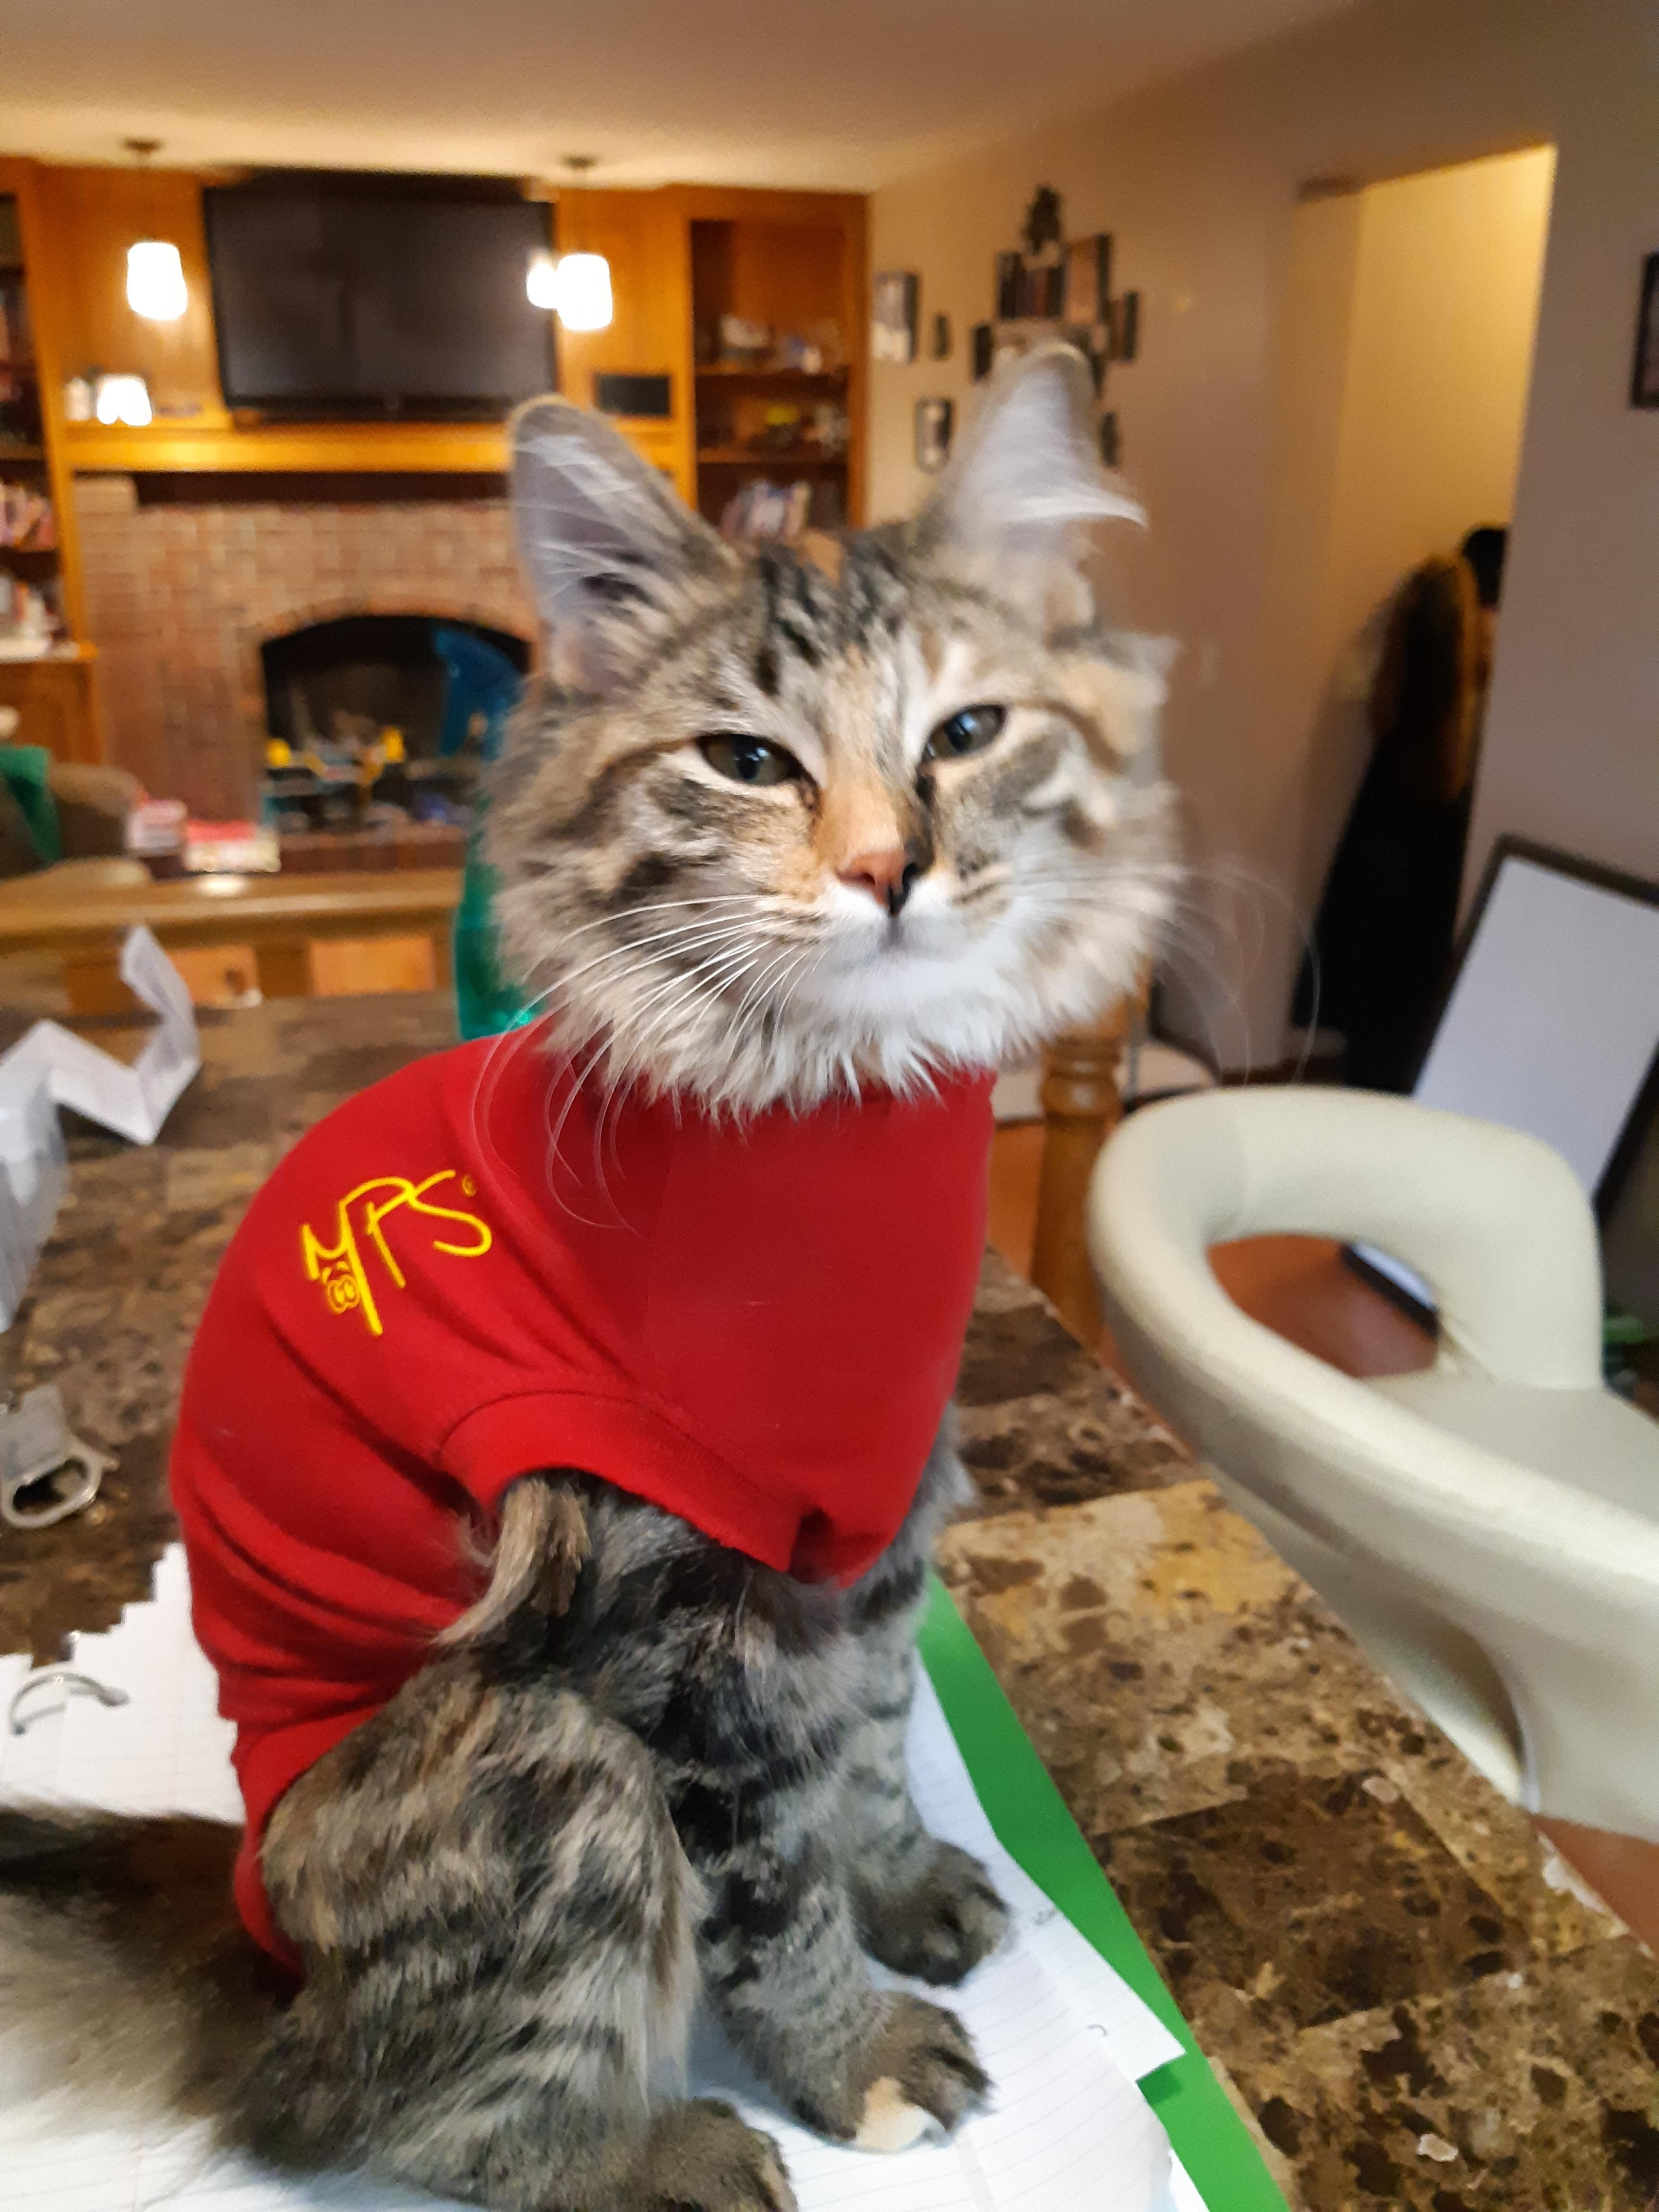 Took My Kitten In To Get Her Fixed And Instead Of A Cone They Gave Her A Little Onesie To Wear Kitten Cats And Kittens Funny Cat Pictures